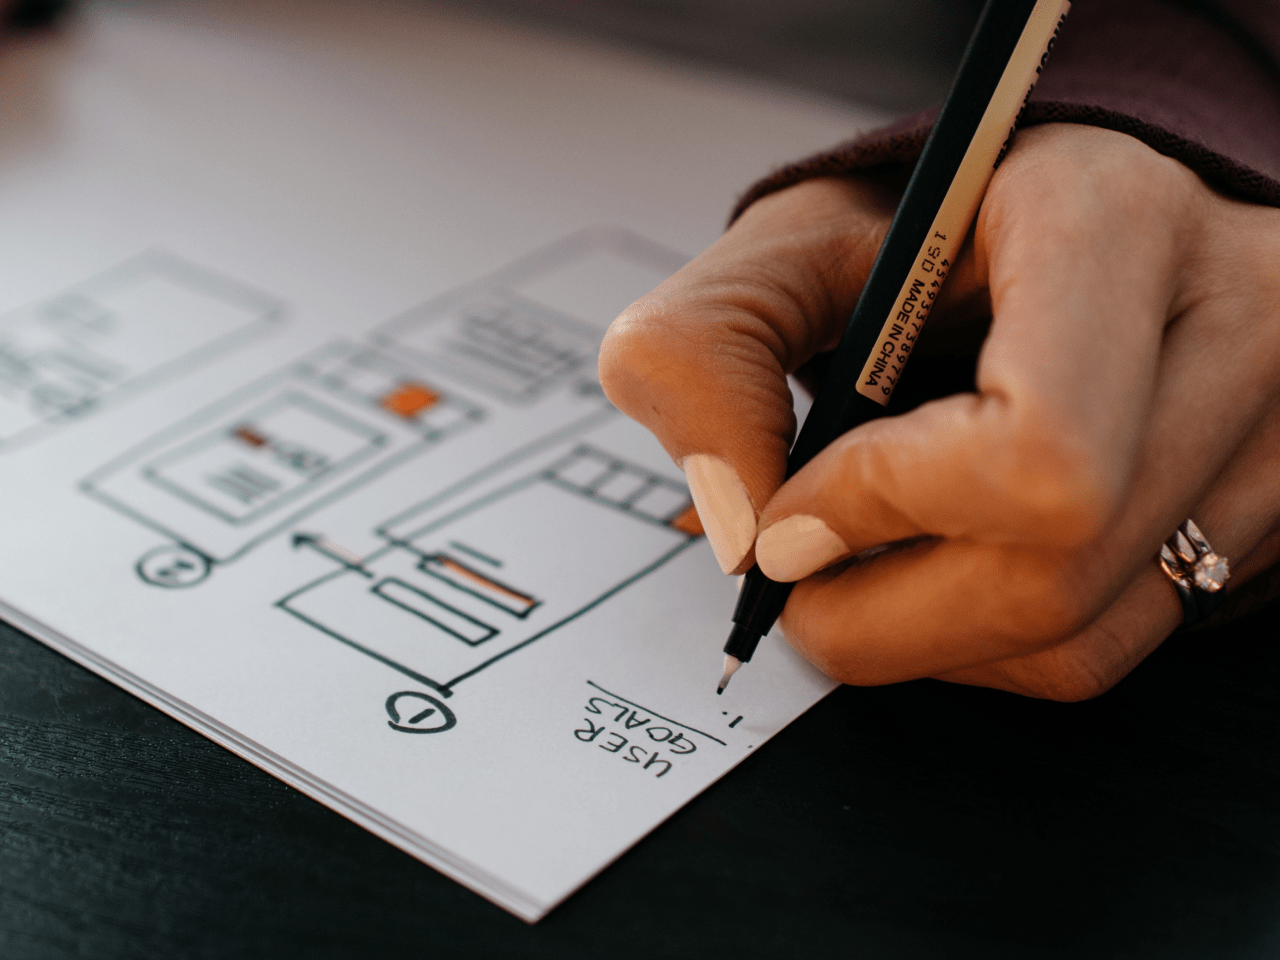 Creating a UX Strategy: breaking down the process